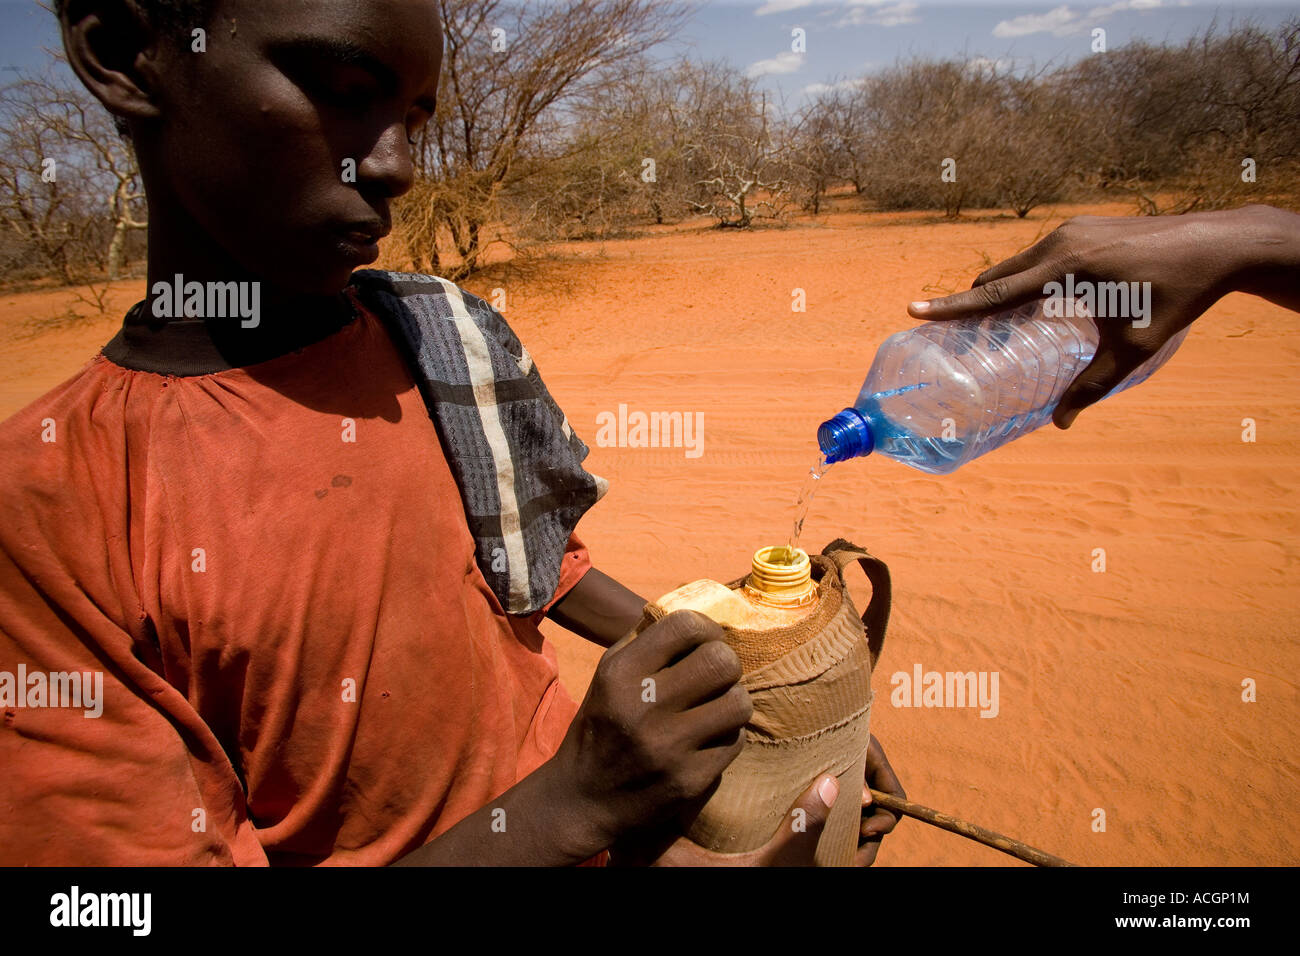 NORTH EAST KENYA 6th MARCH 2006 A nomad boy gets water from a passing driver during the worst drought in 20 years - Stock Image